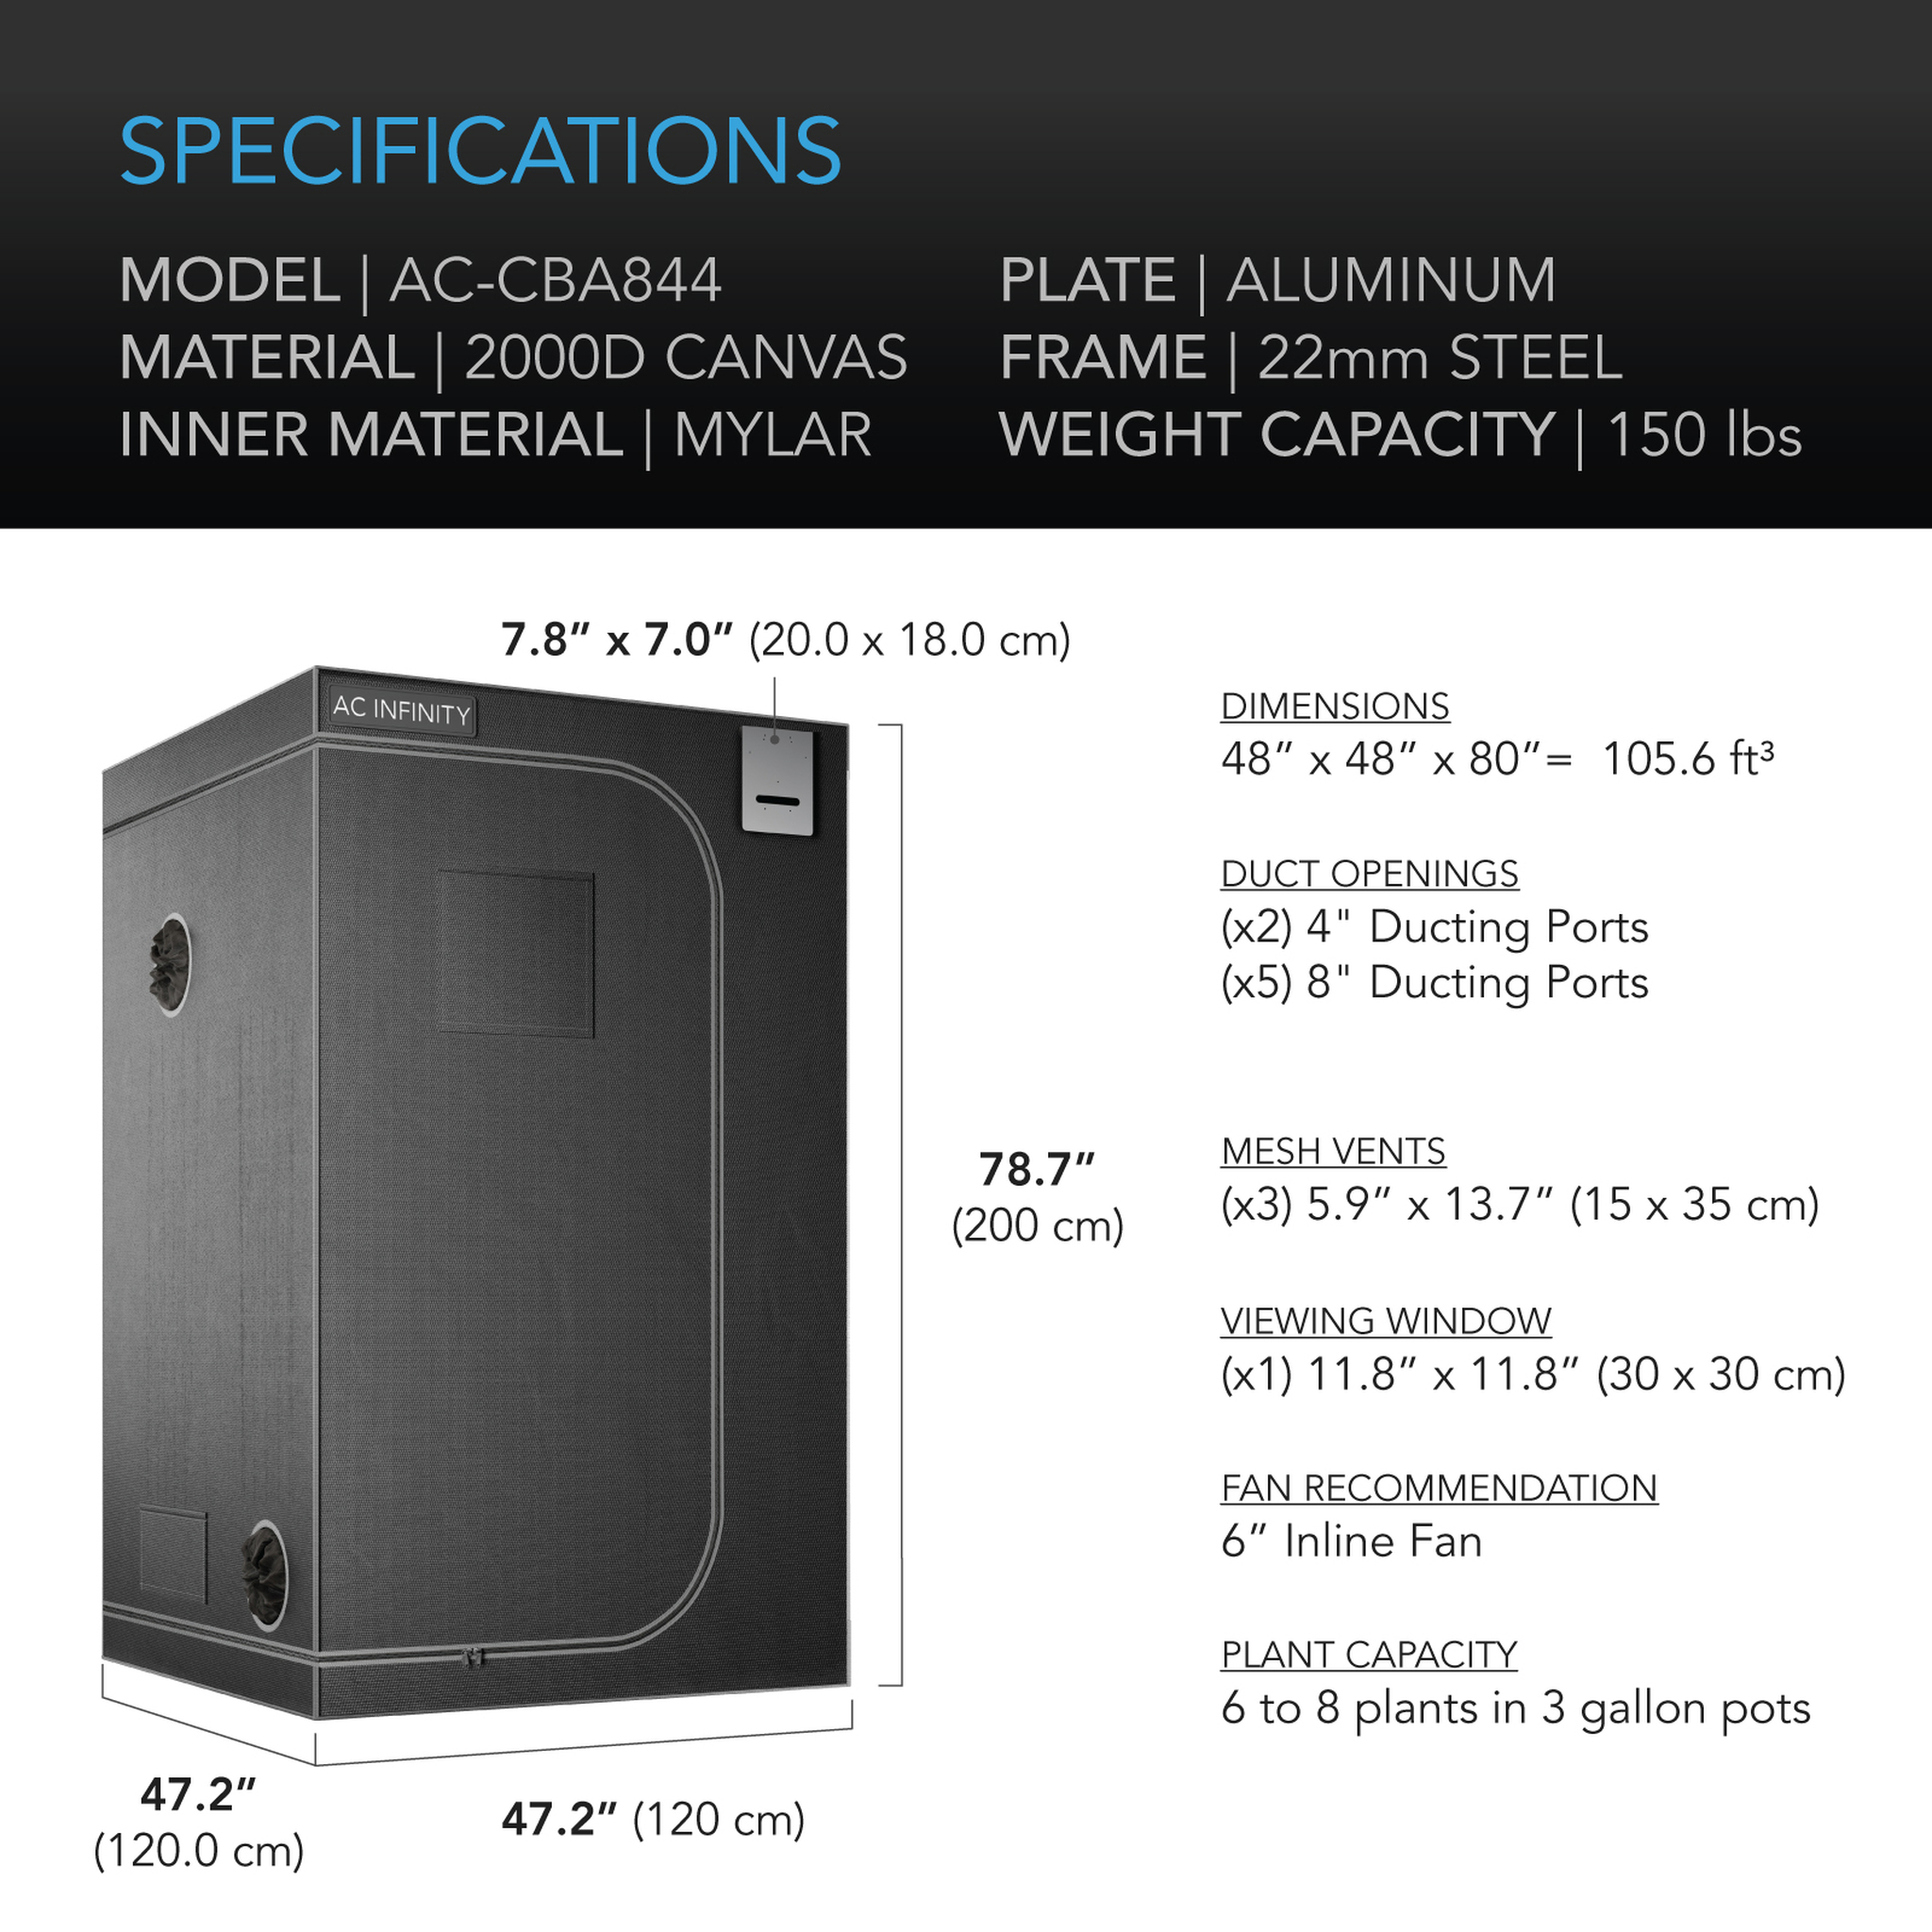 Cloudlab 844 Specifications